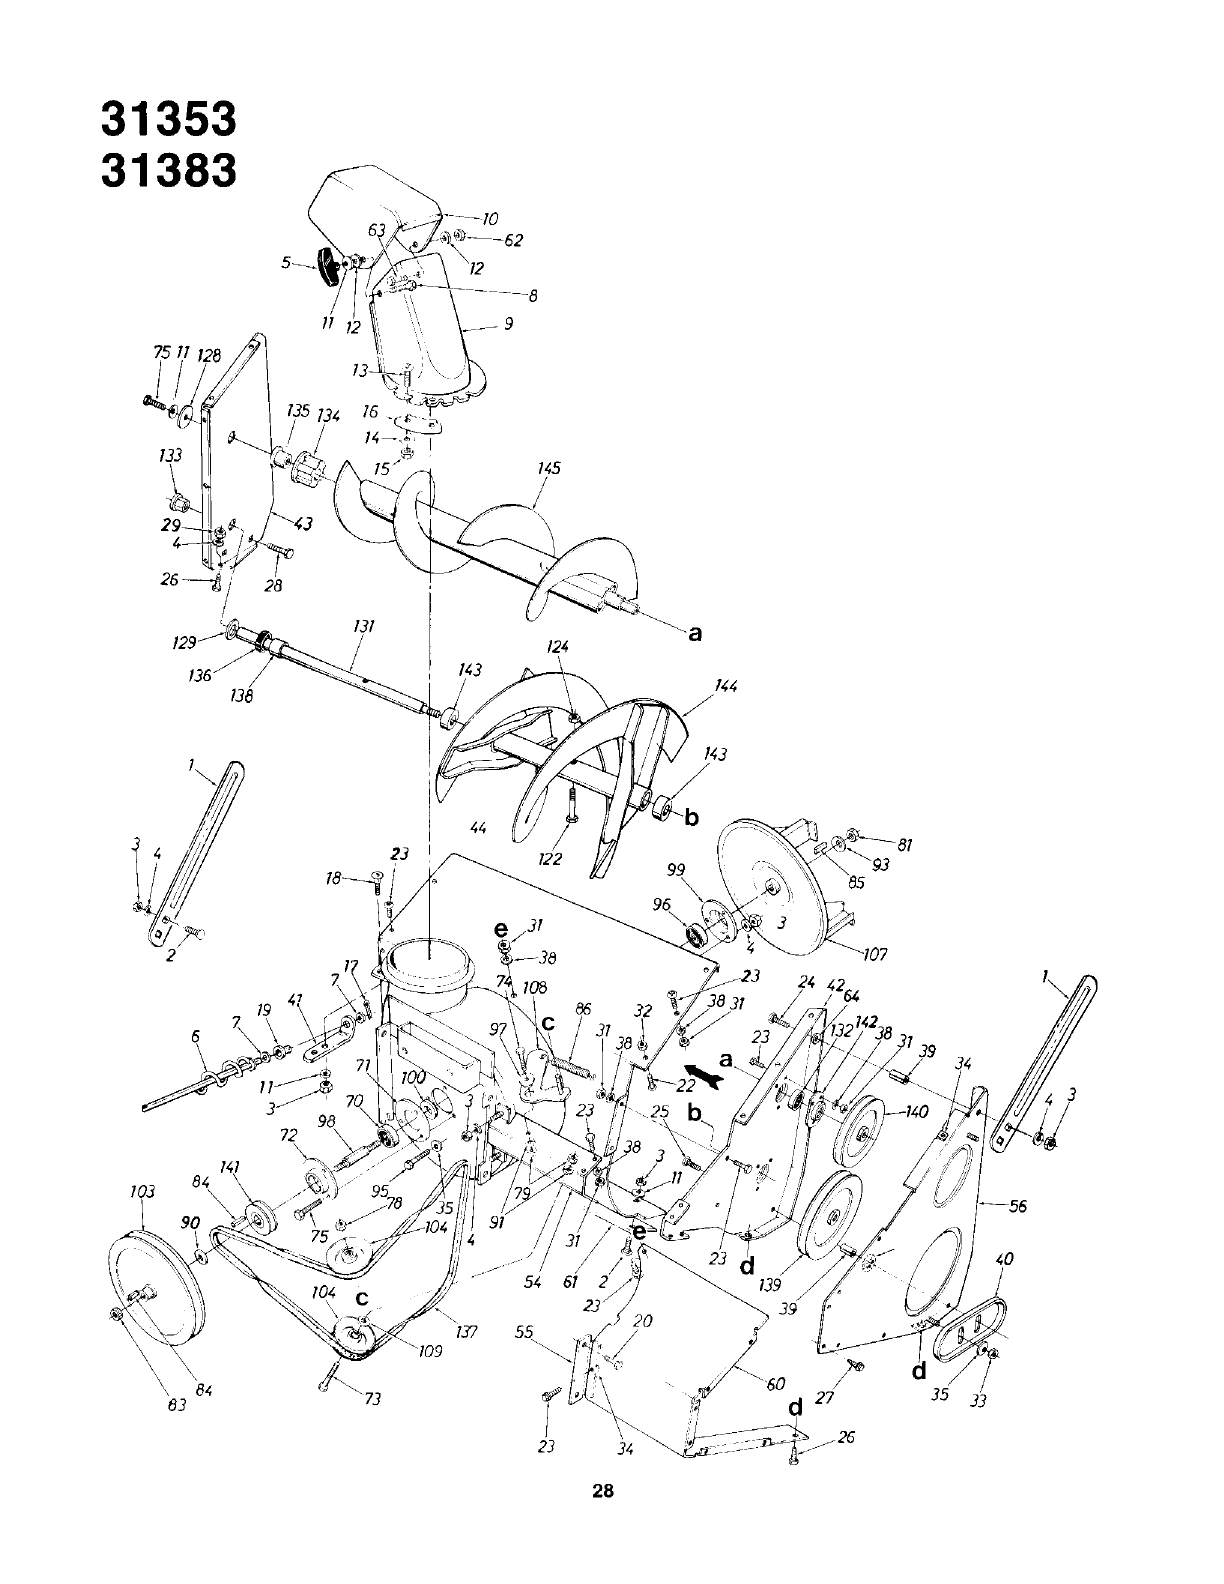 Page 28 of Yard-Man Snow Blower 31340-8 User Guide